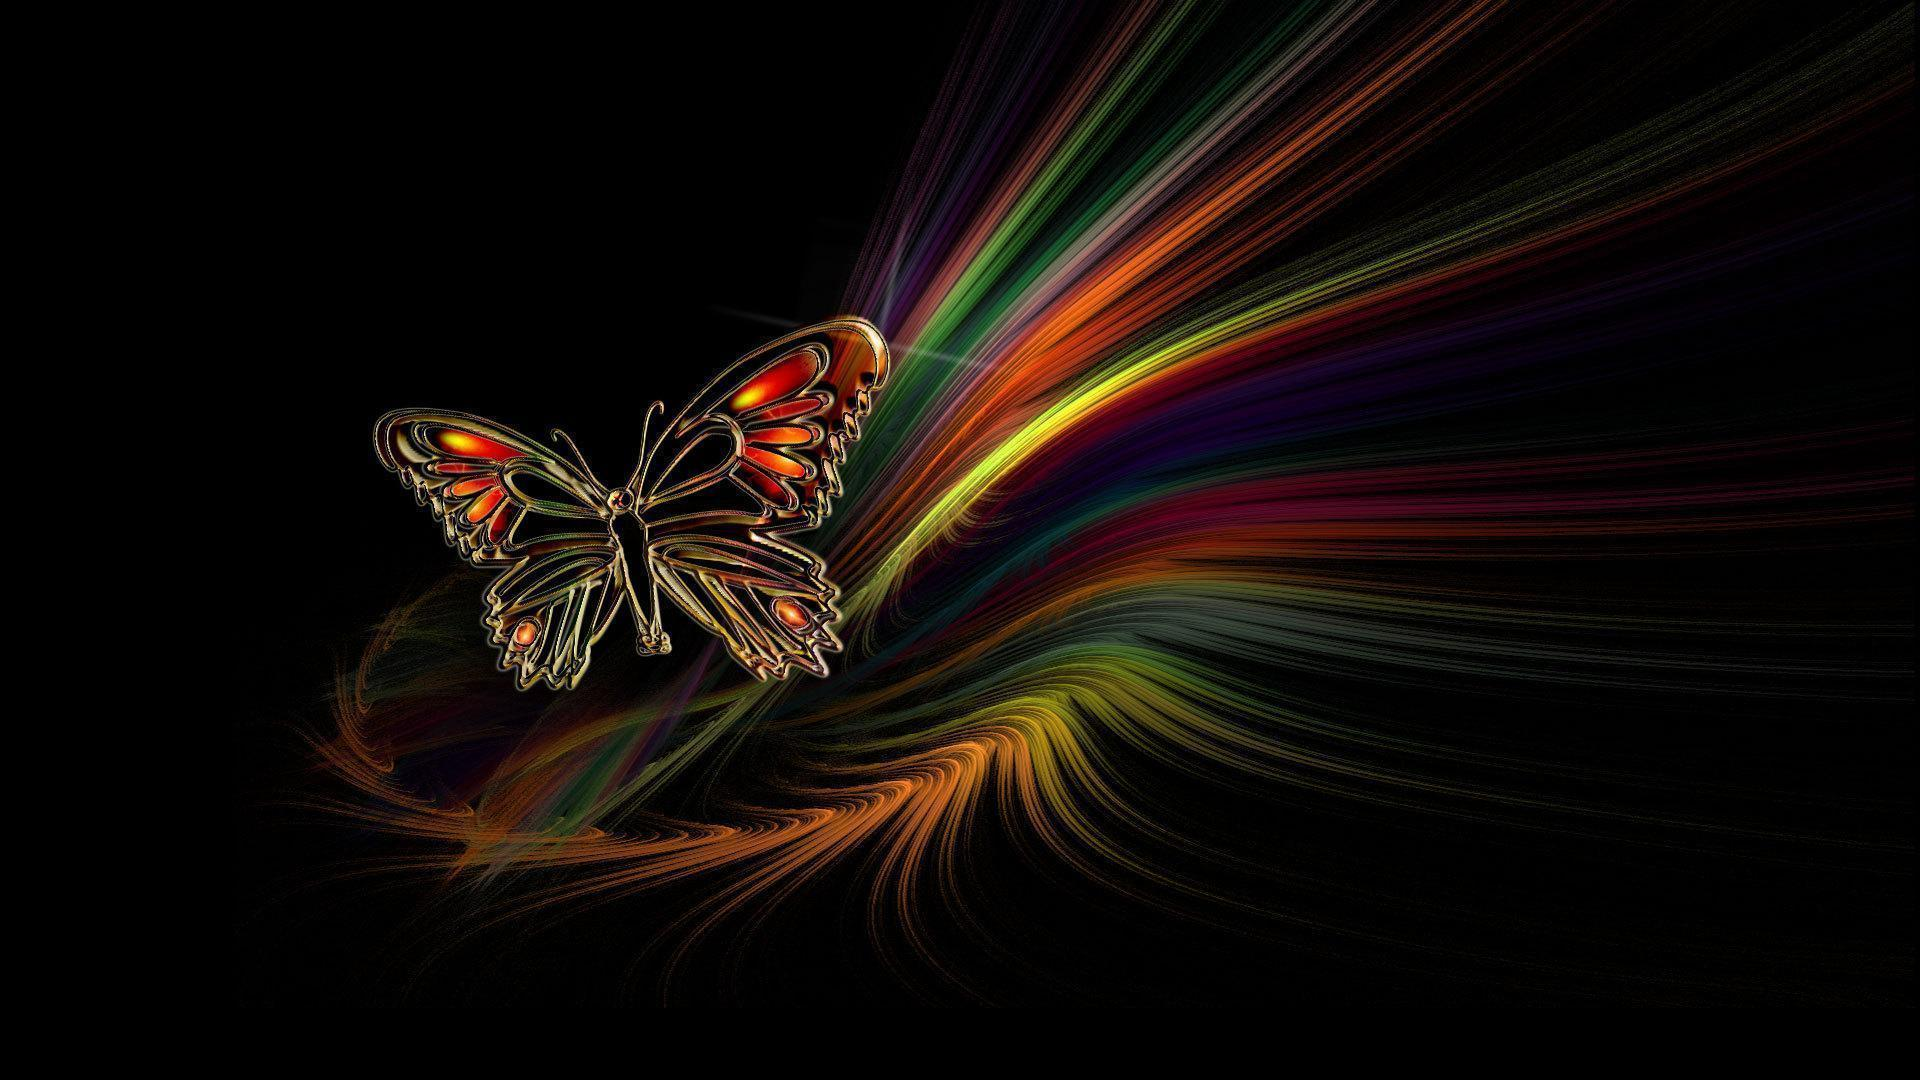 Butterfly Black Backgrounds Wallpaper Cave